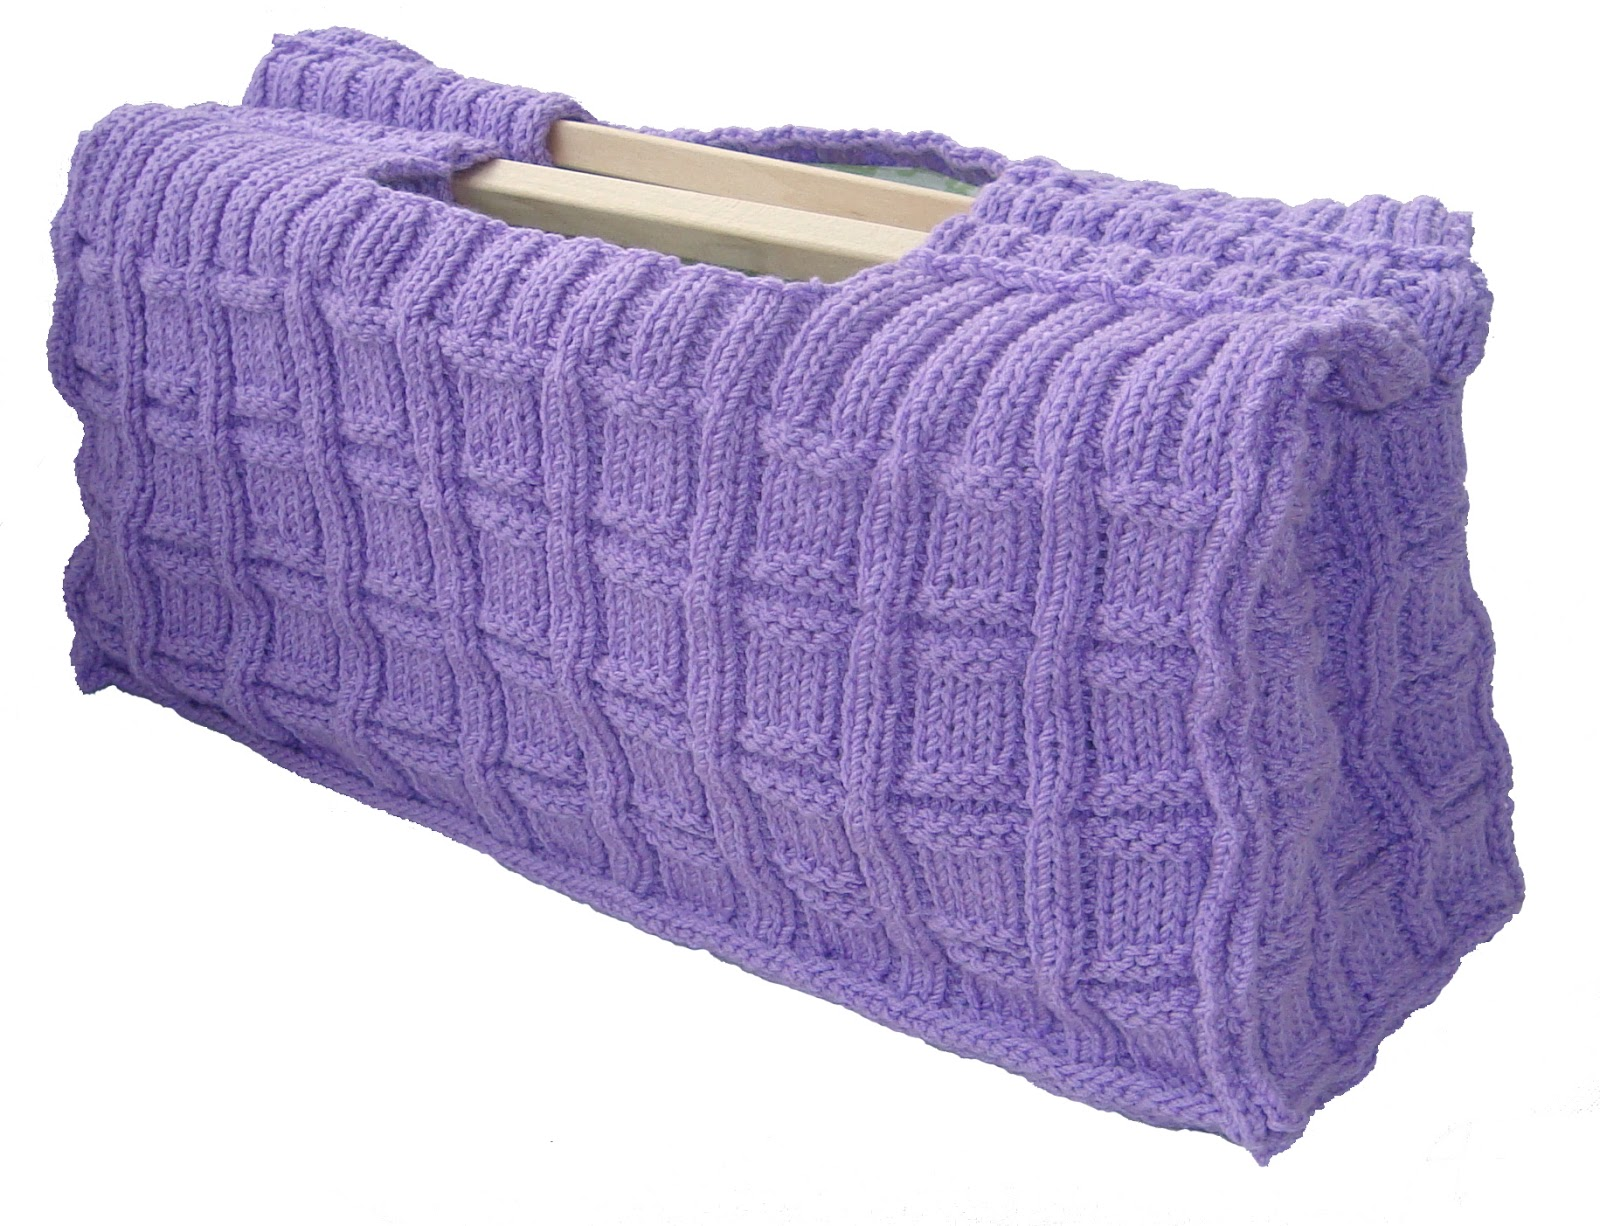 Knitting and Sewing Craft Project Bag. PDF Hand Knitting Pattern.